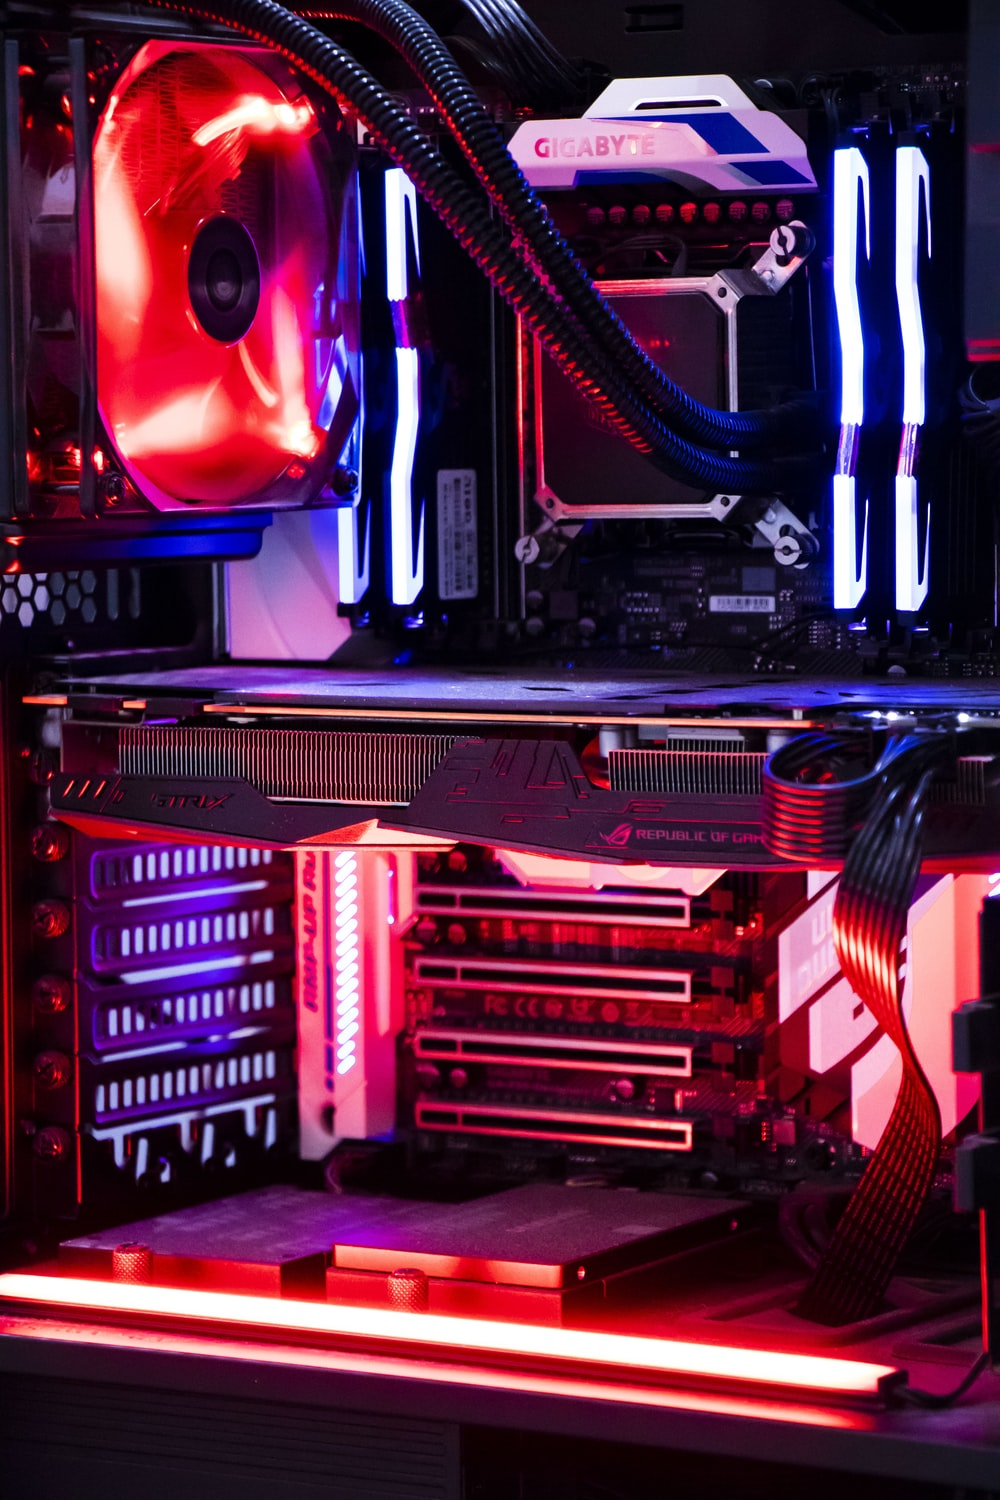 red and black computer tower